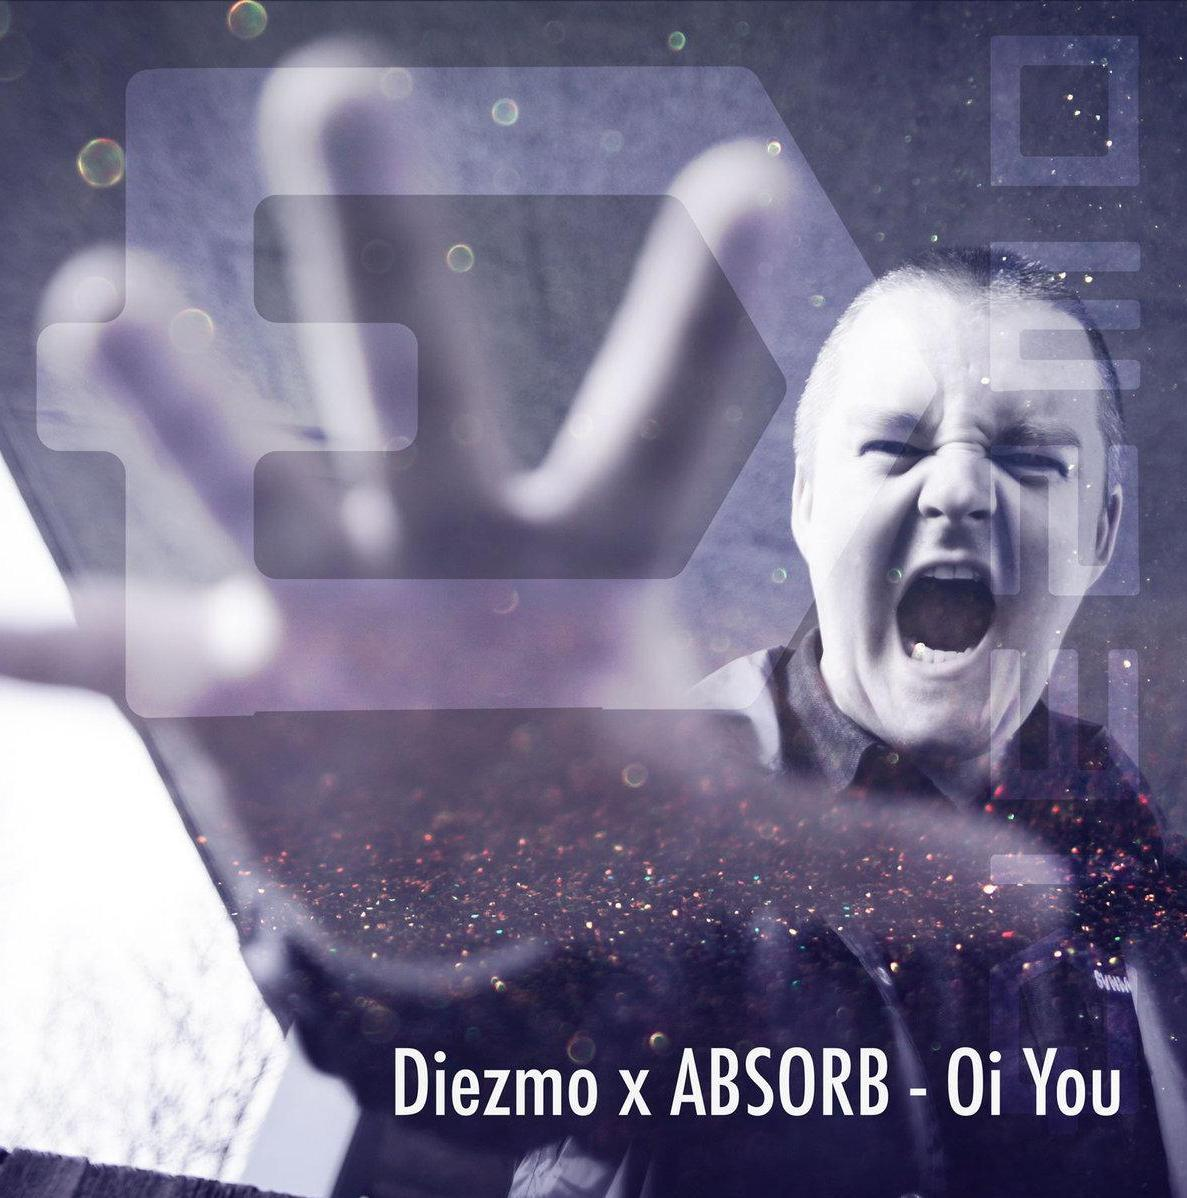 Diezmo x ABSORB - Oi You (Bogdanl Remix)